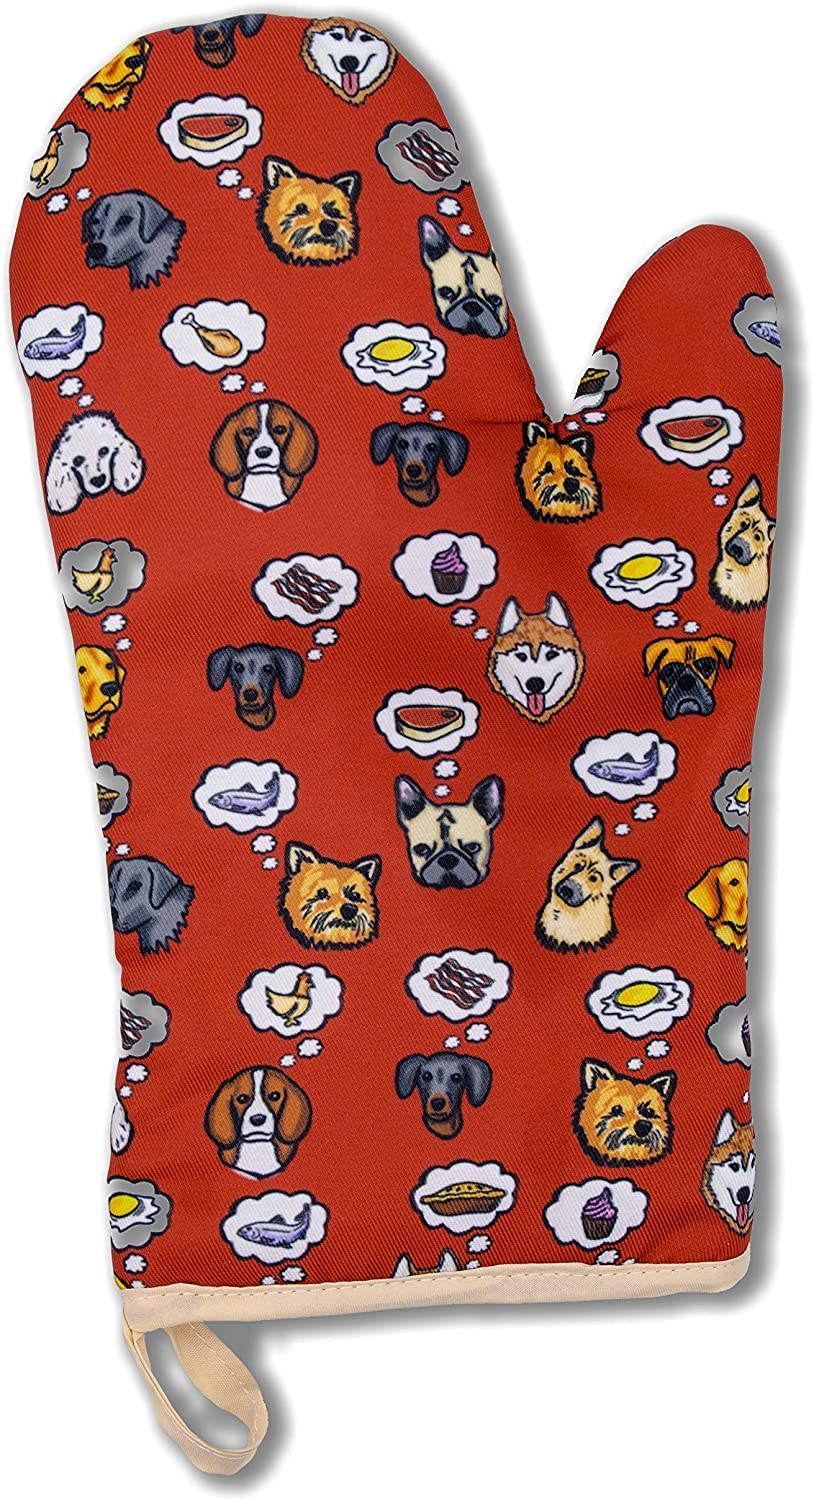 Funny Heat Resistant Oven Mitt Pot Holder Glove - Kitchen Gift for Women and Men - Cooking, Baking, BBQ and Animal Lovers (Dog Dreams)